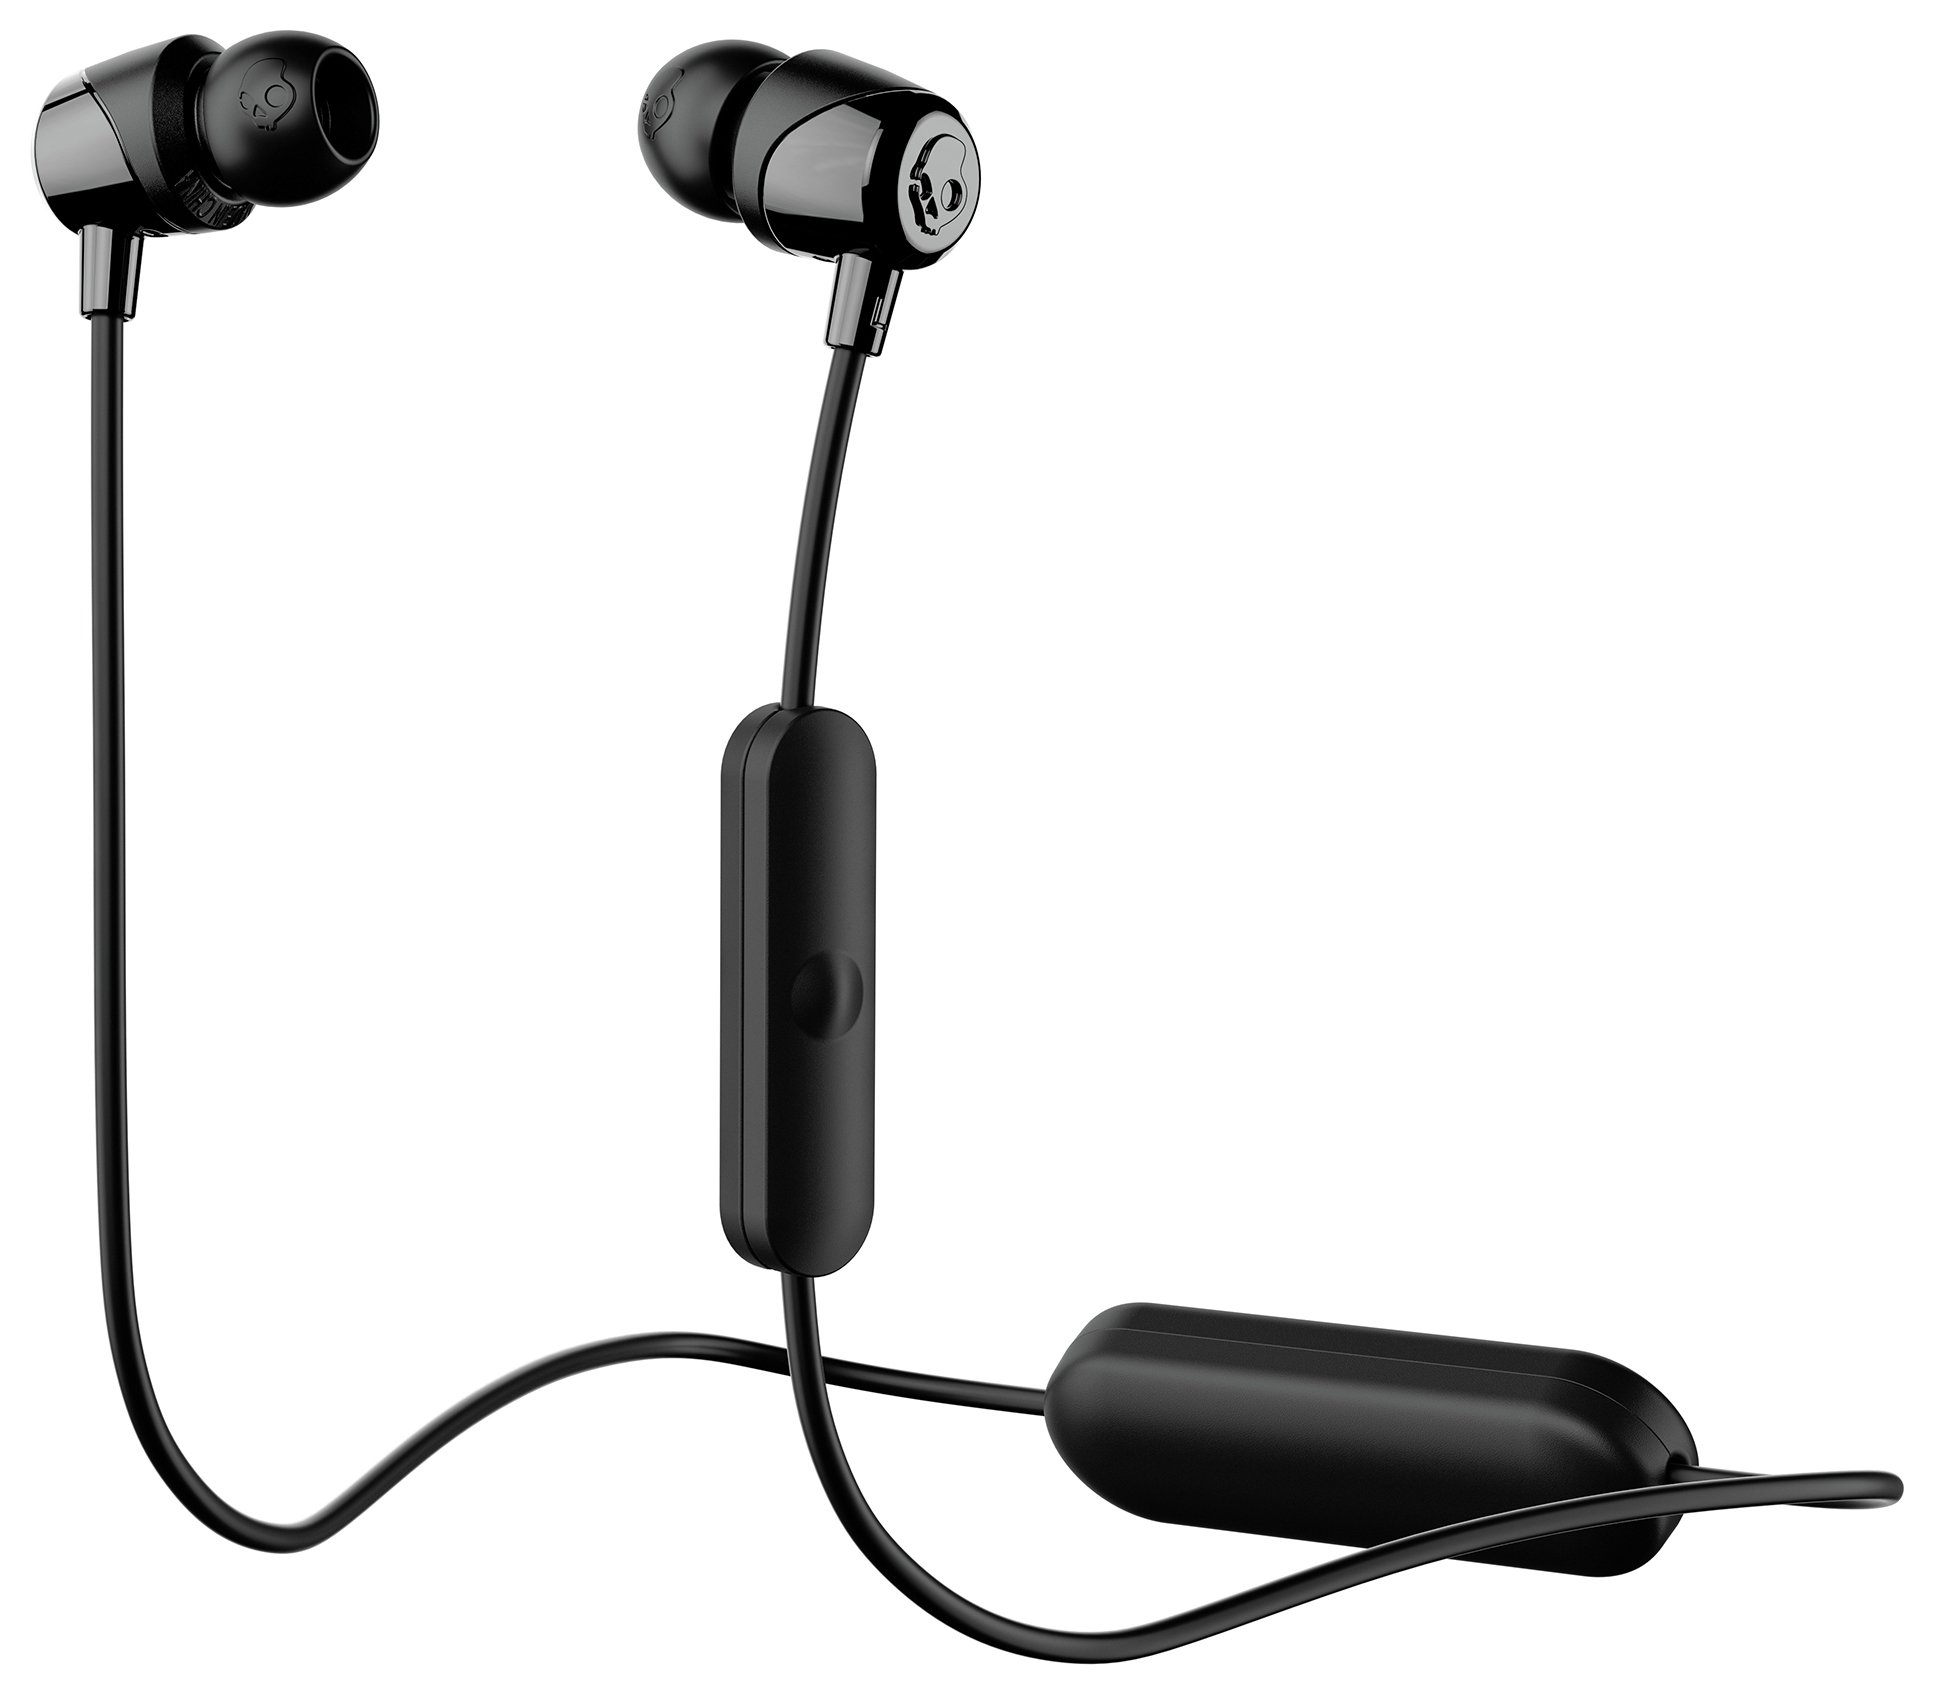 Skullcandy Jib Wireless In-Ear Headphones - Black